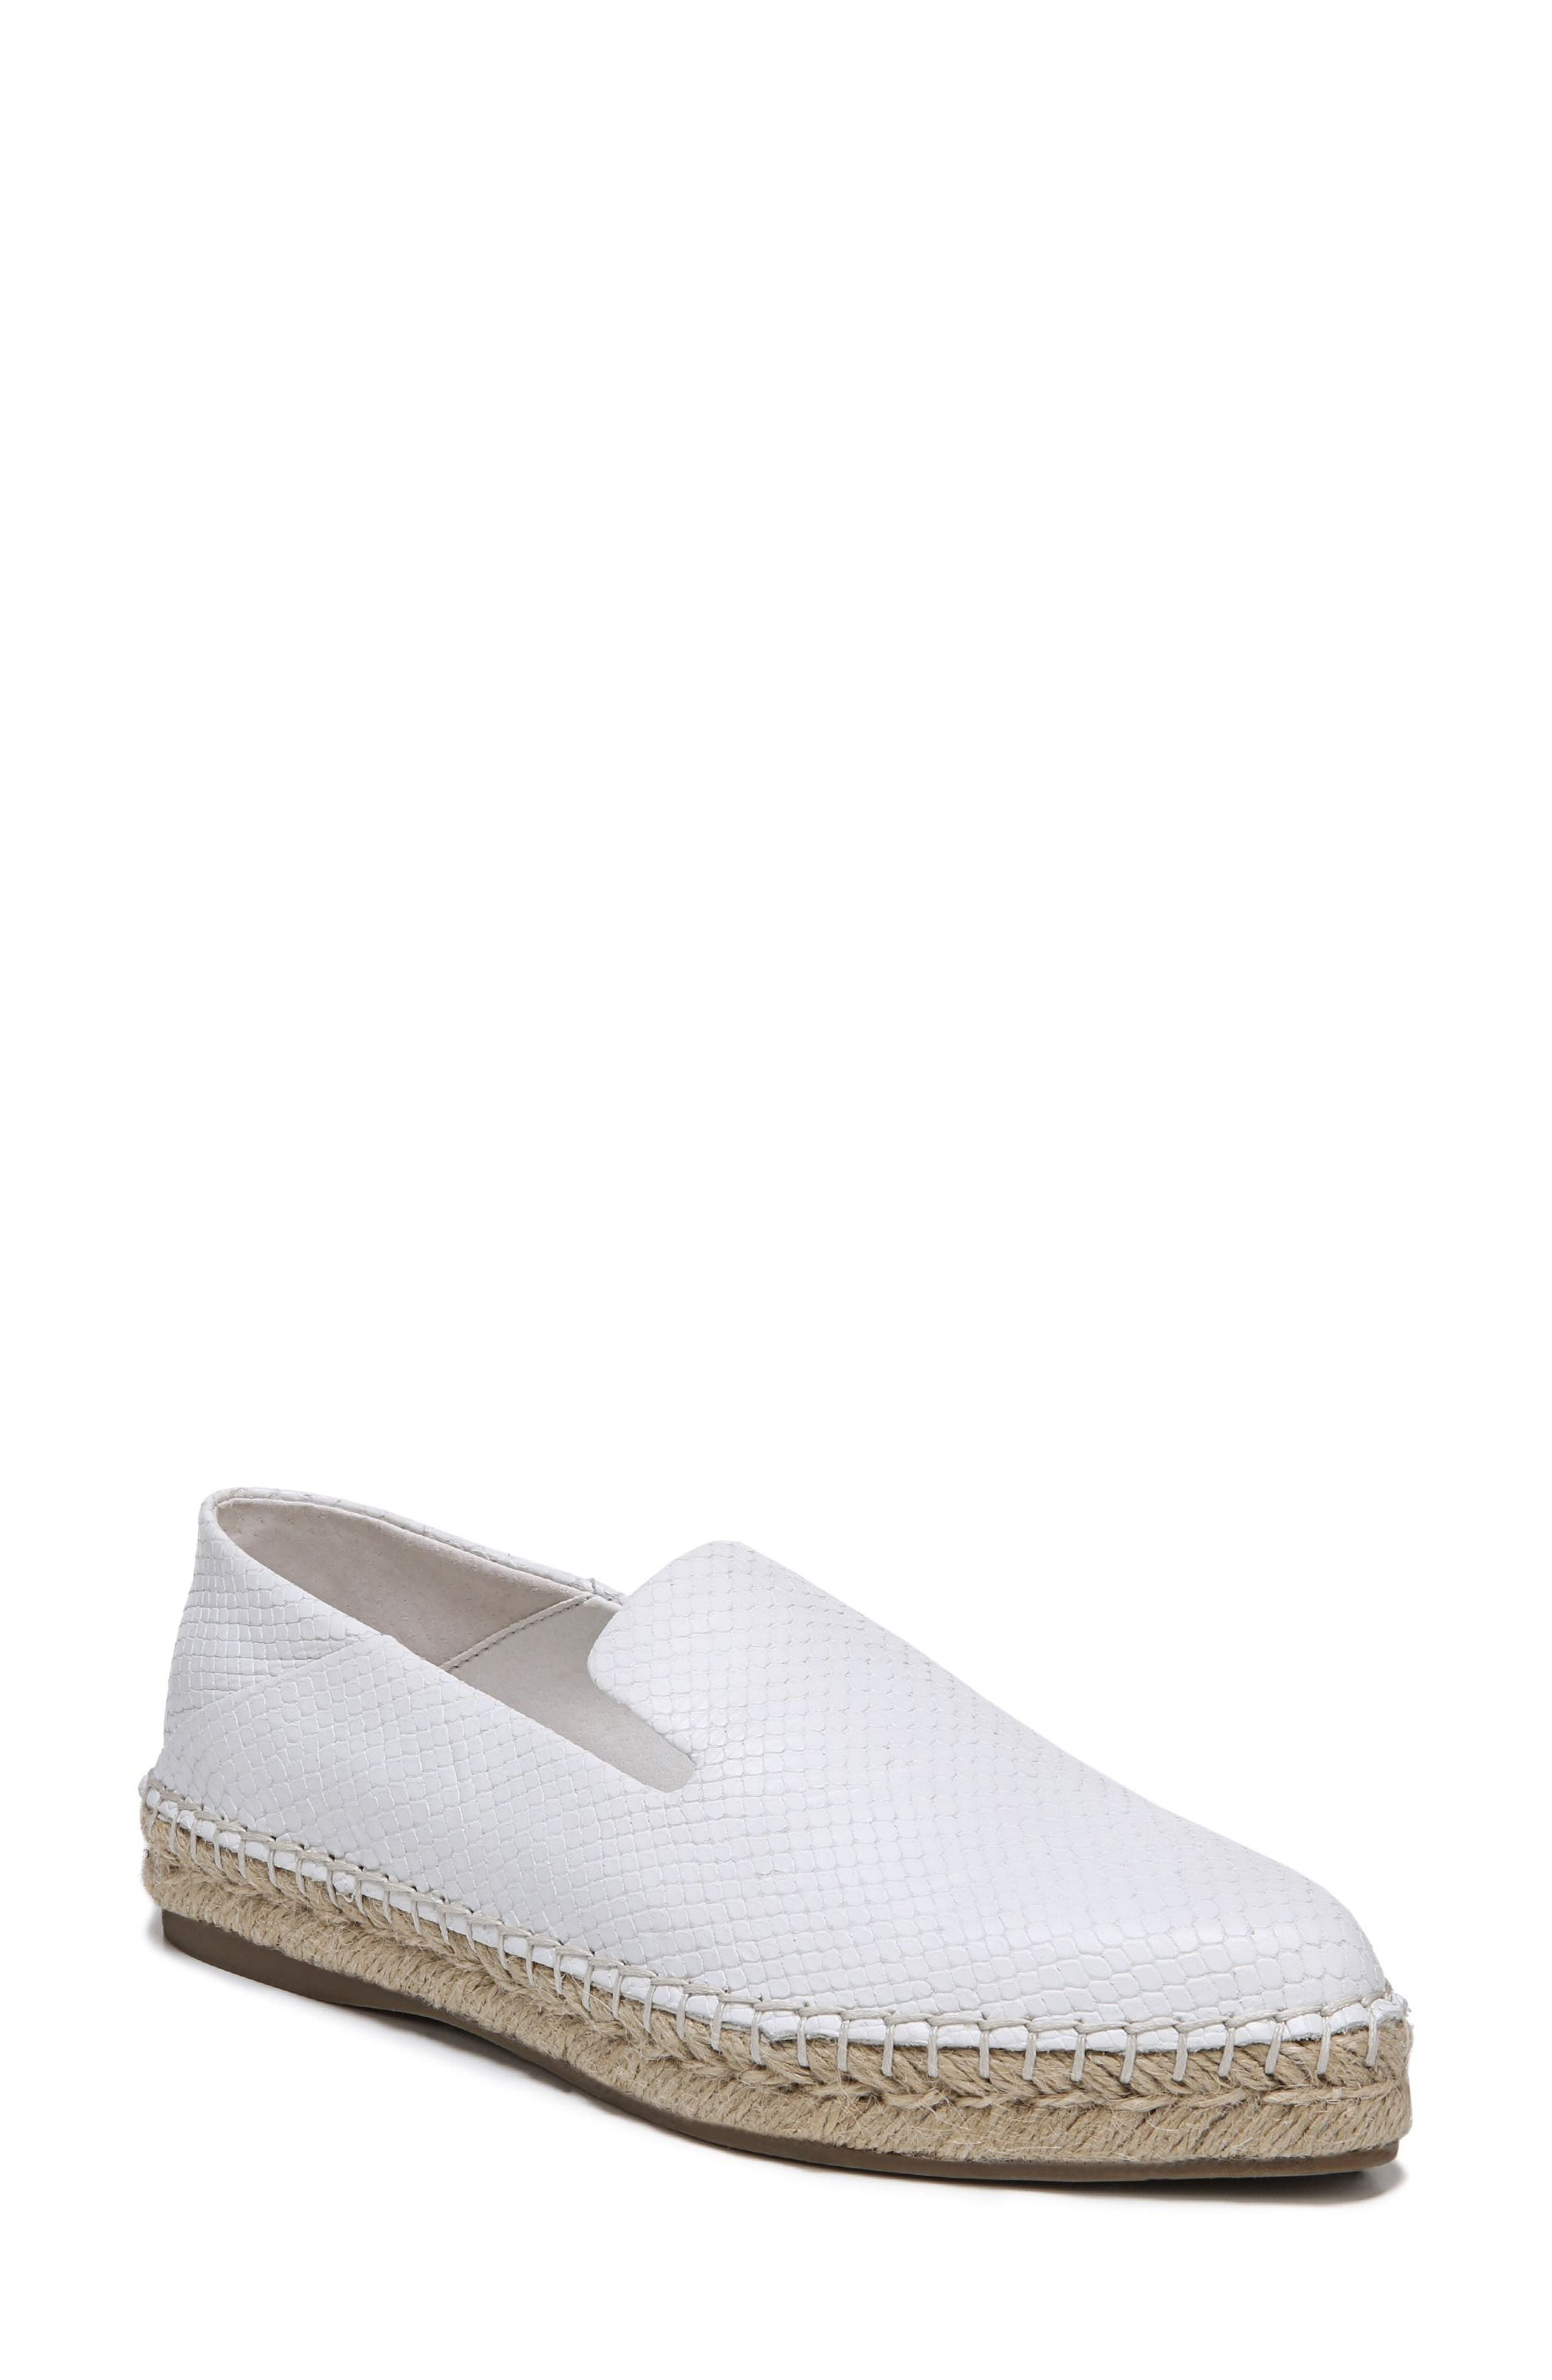 Eviana Espadrille Loafer,                         Main,                         color, Blanca Snake Print Leather